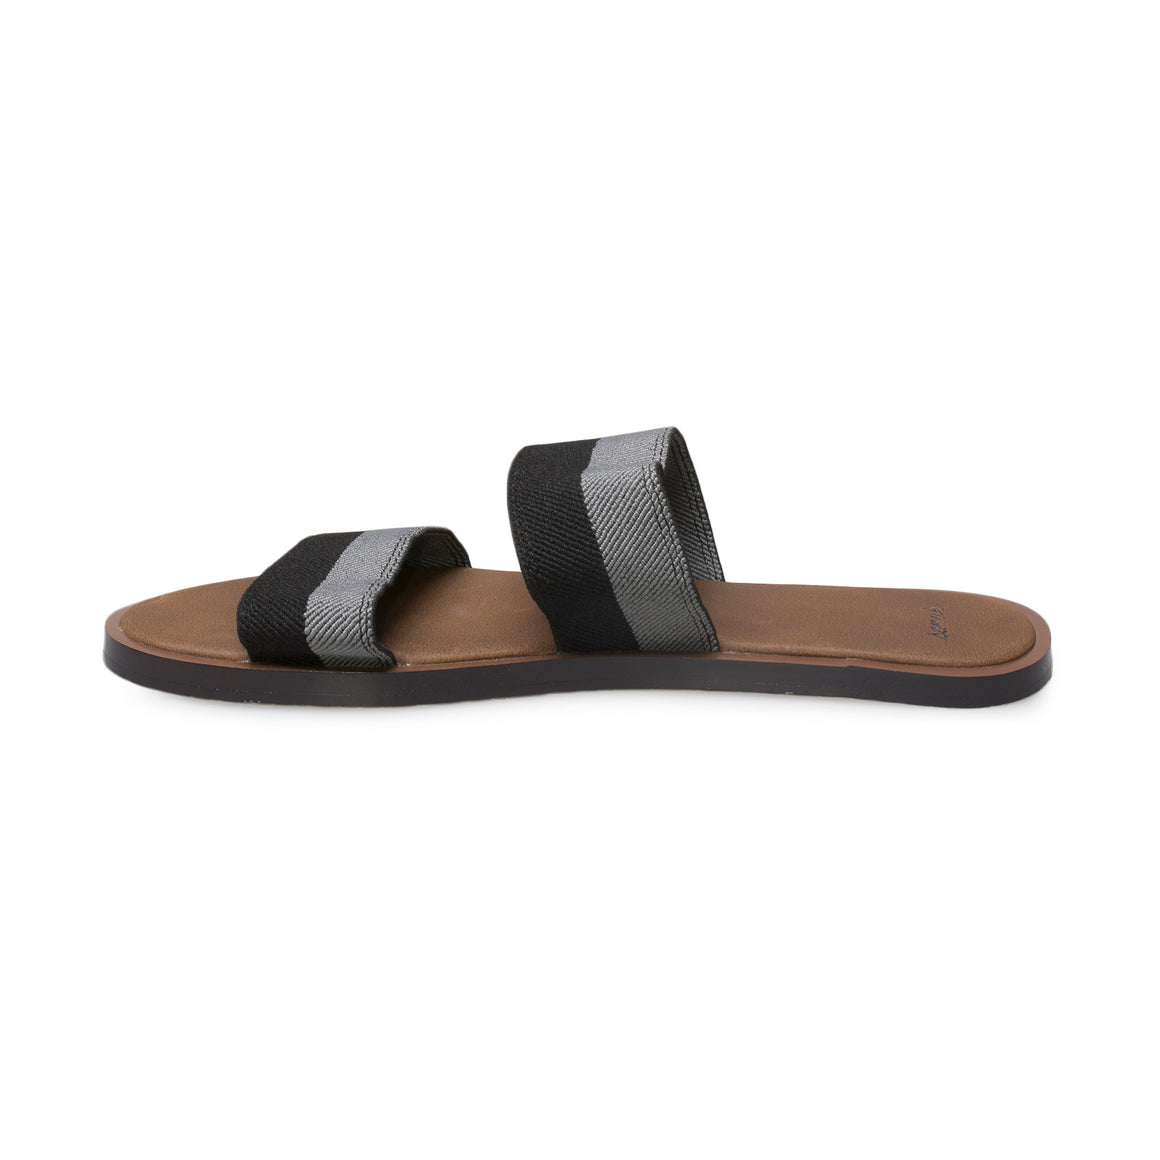 Sanuk Yoga Gora Gora Black / Charcoal Sandals - Women's